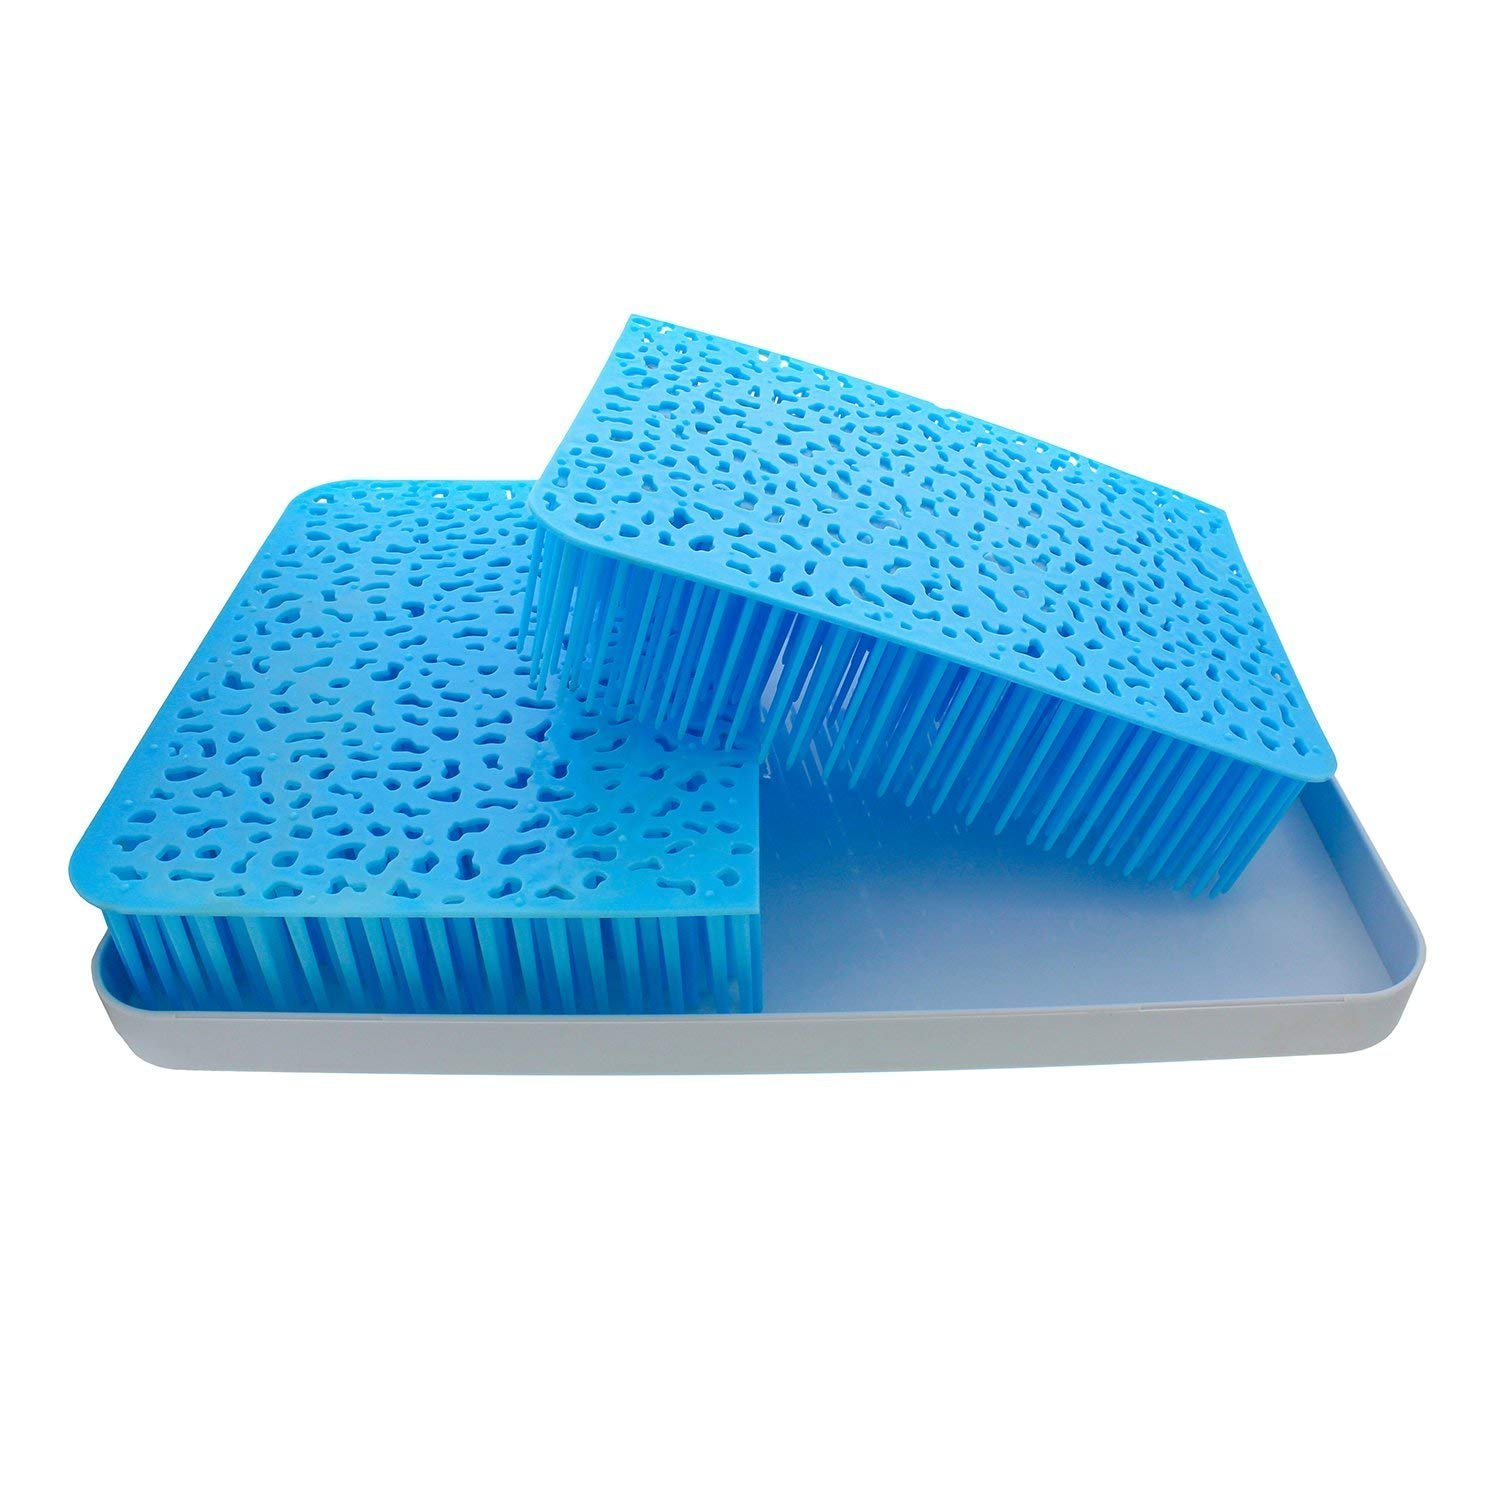 Blue Large Baby Bottle Drying Rack Anti-Bacterial Large Grass for Kitchen Countertop